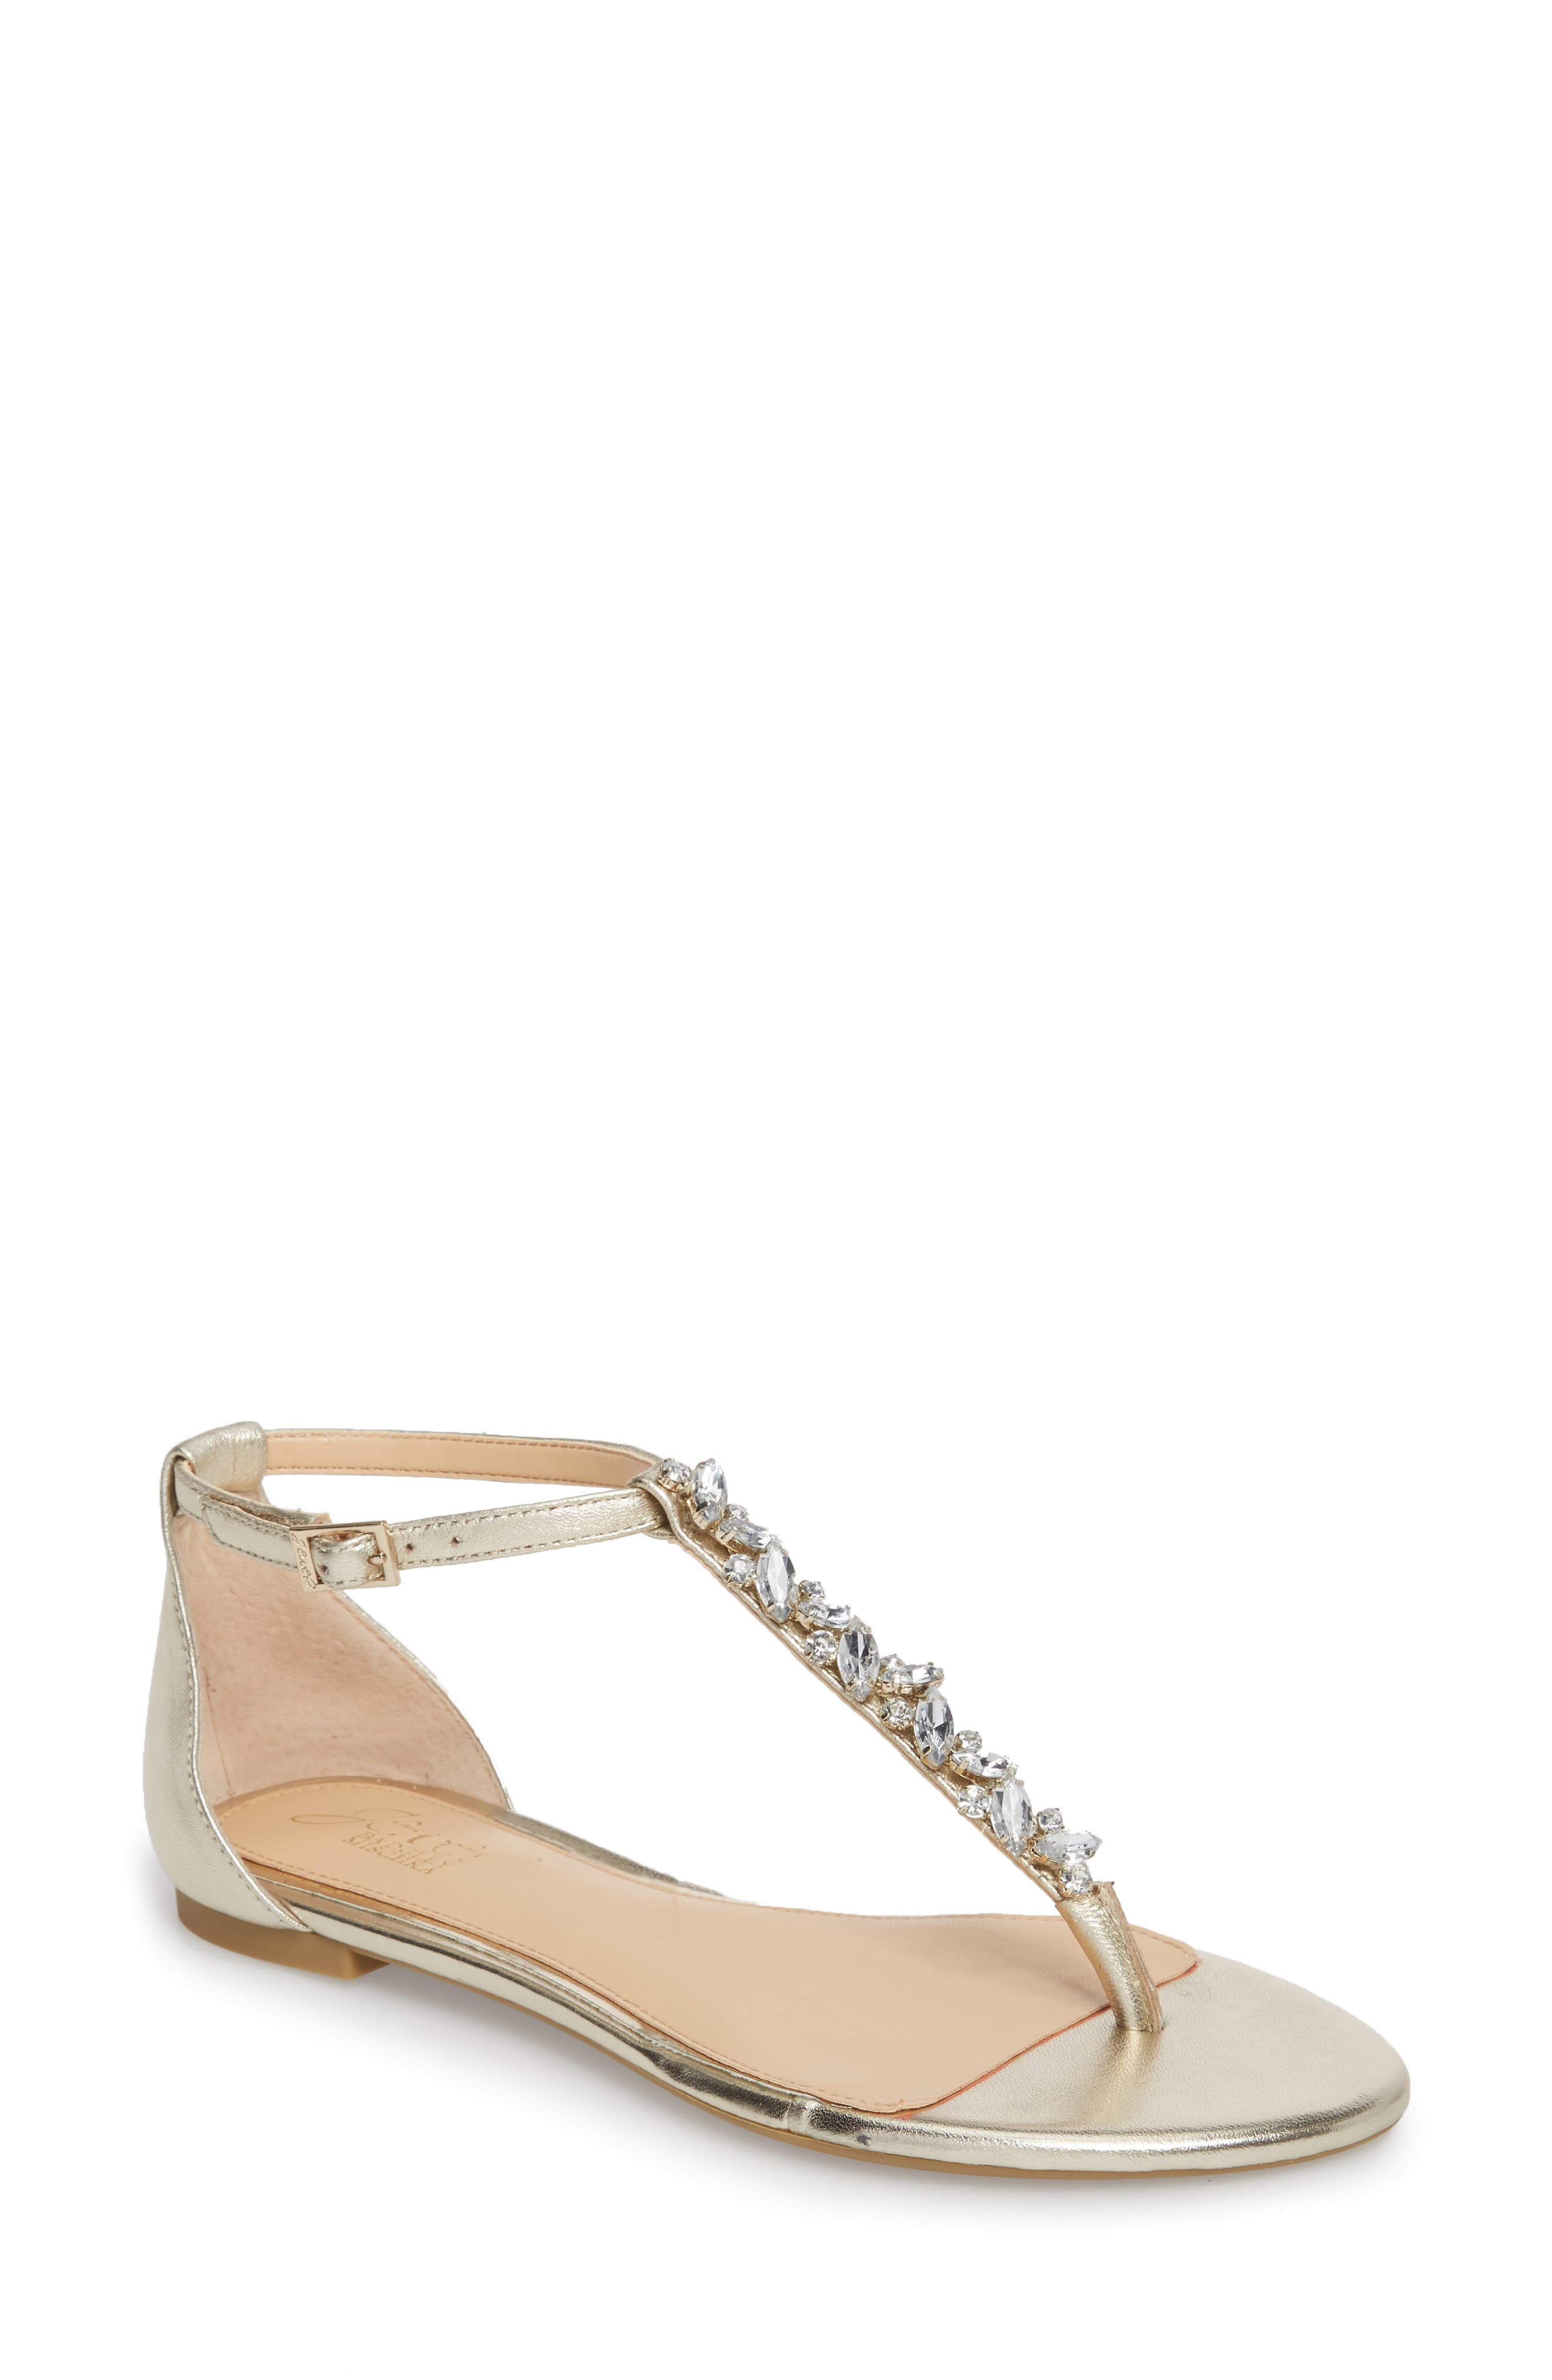 Carrol Embellished T-Strap Sandal,                             Main thumbnail 1, color,                             GOLD METALLIC LEATHER